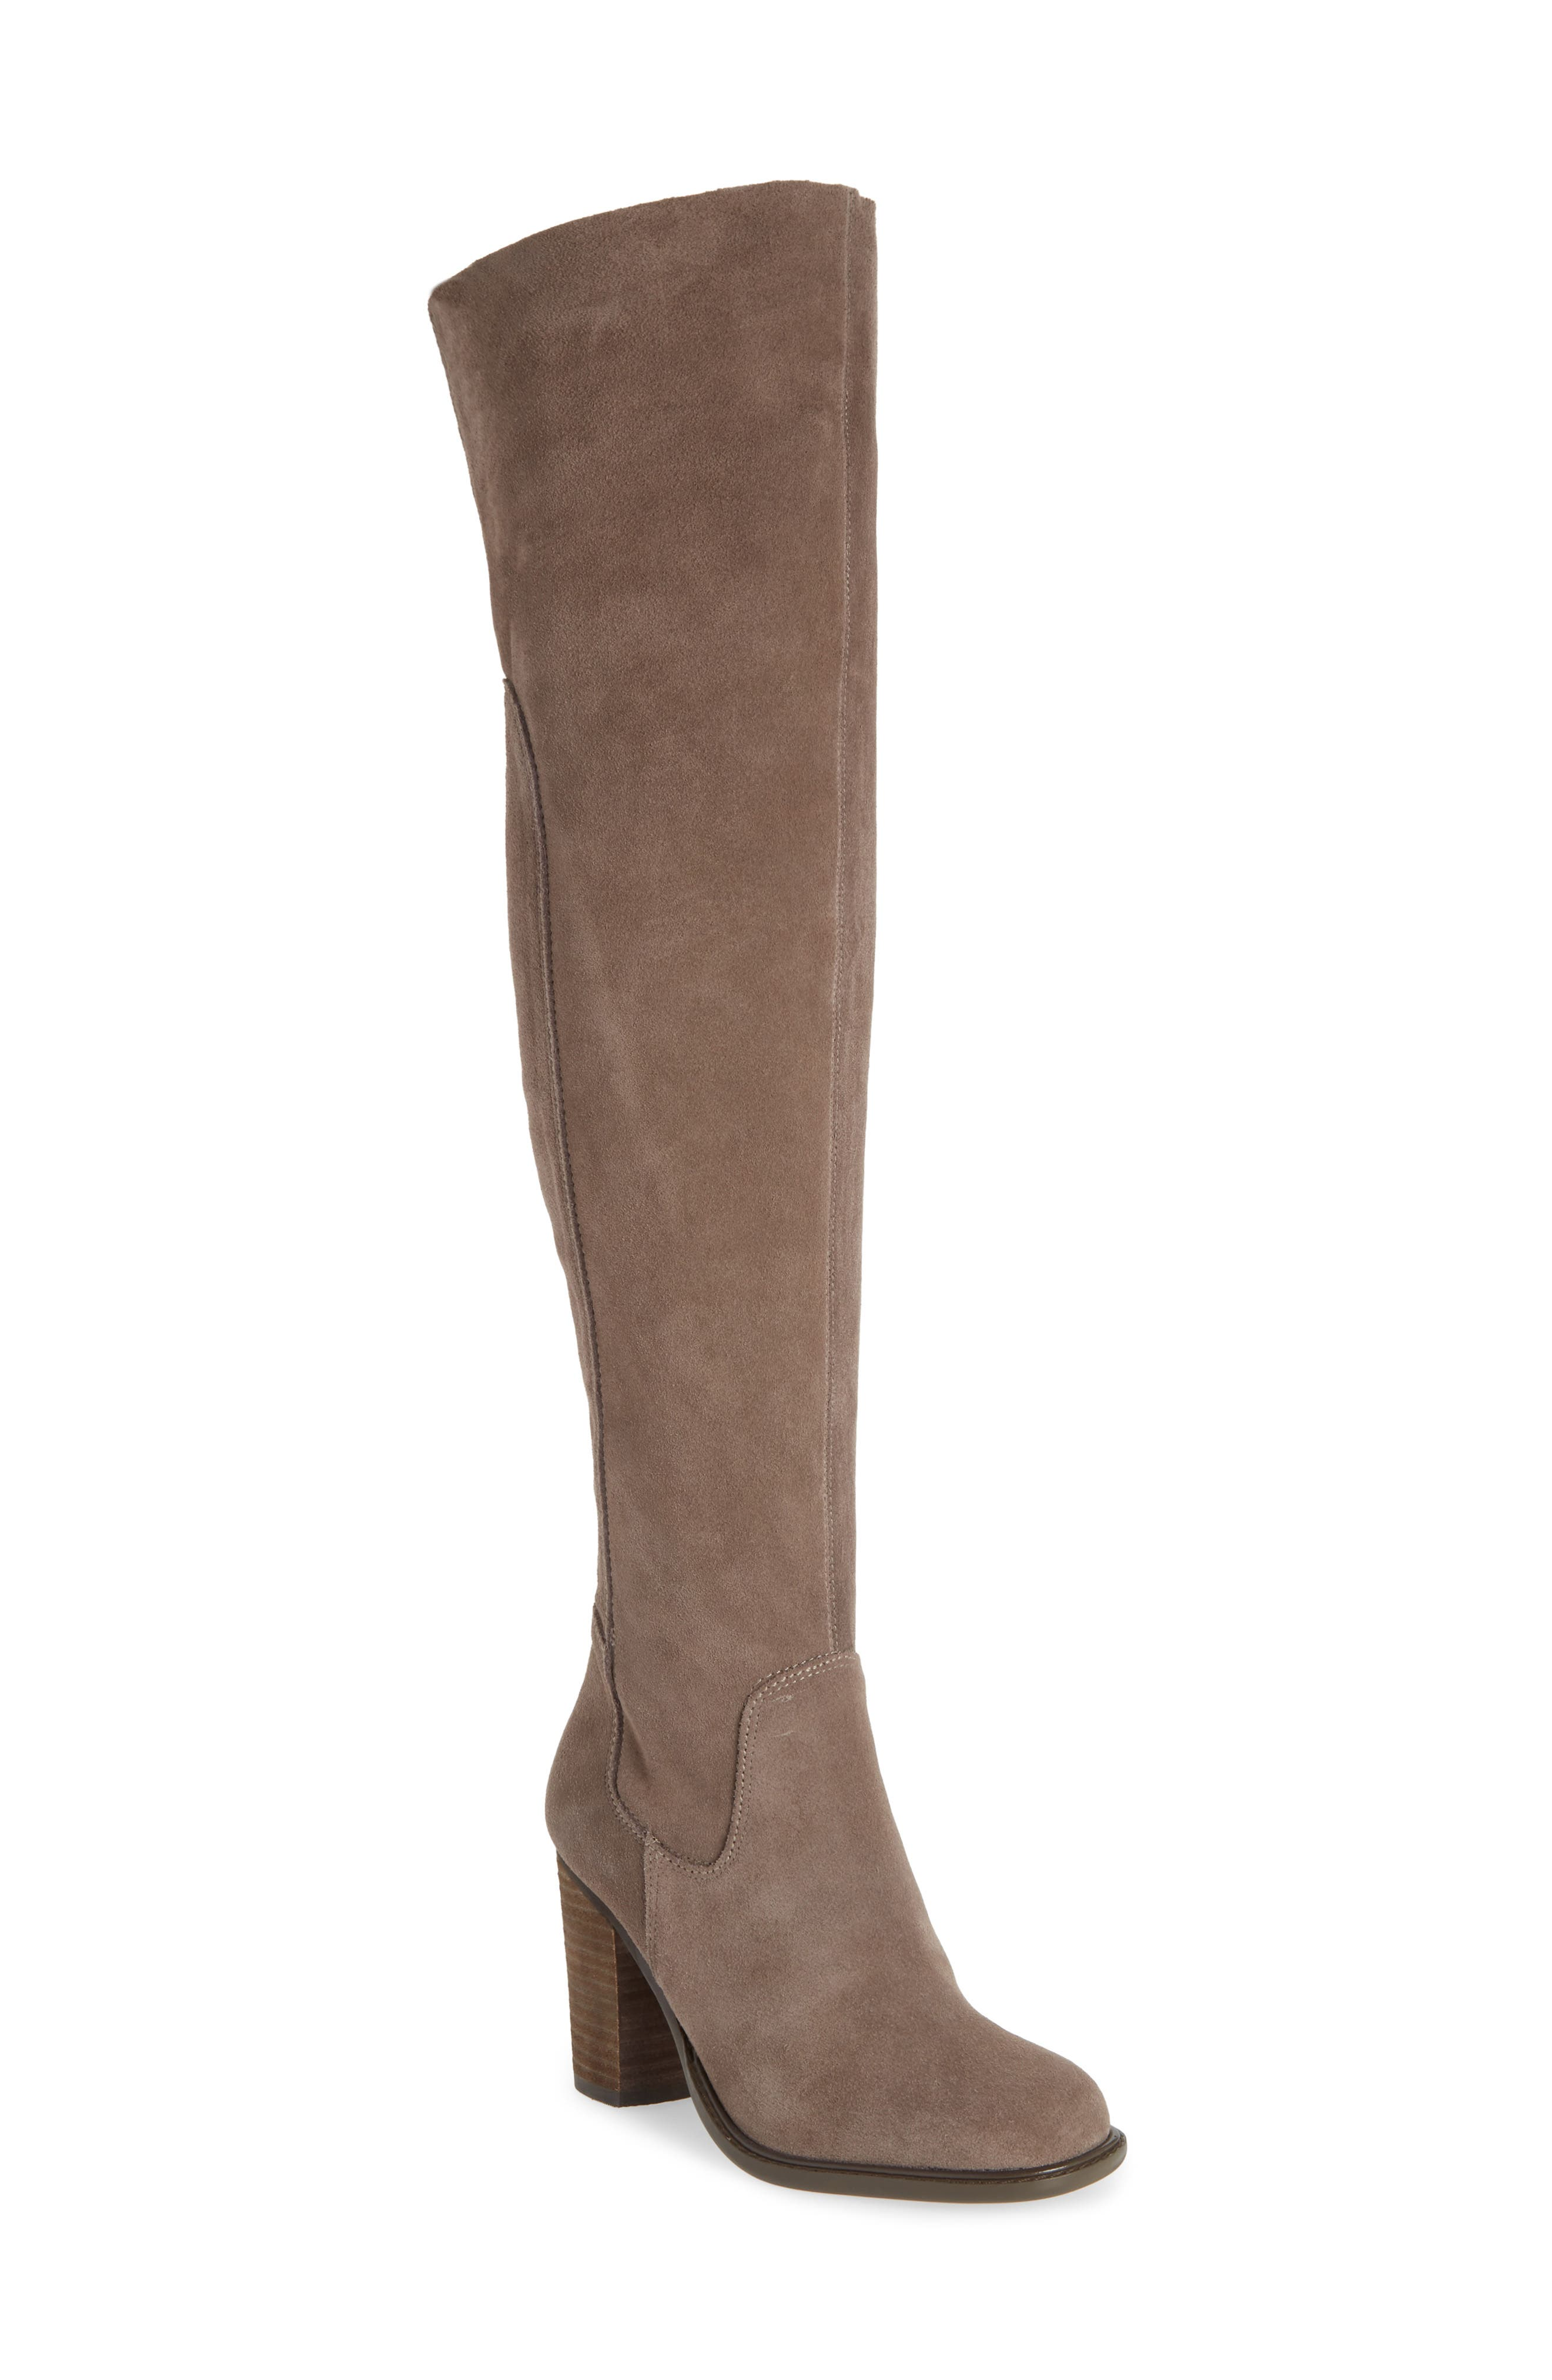 Logan Over the Knee Boot,                             Main thumbnail 1, color,                             020